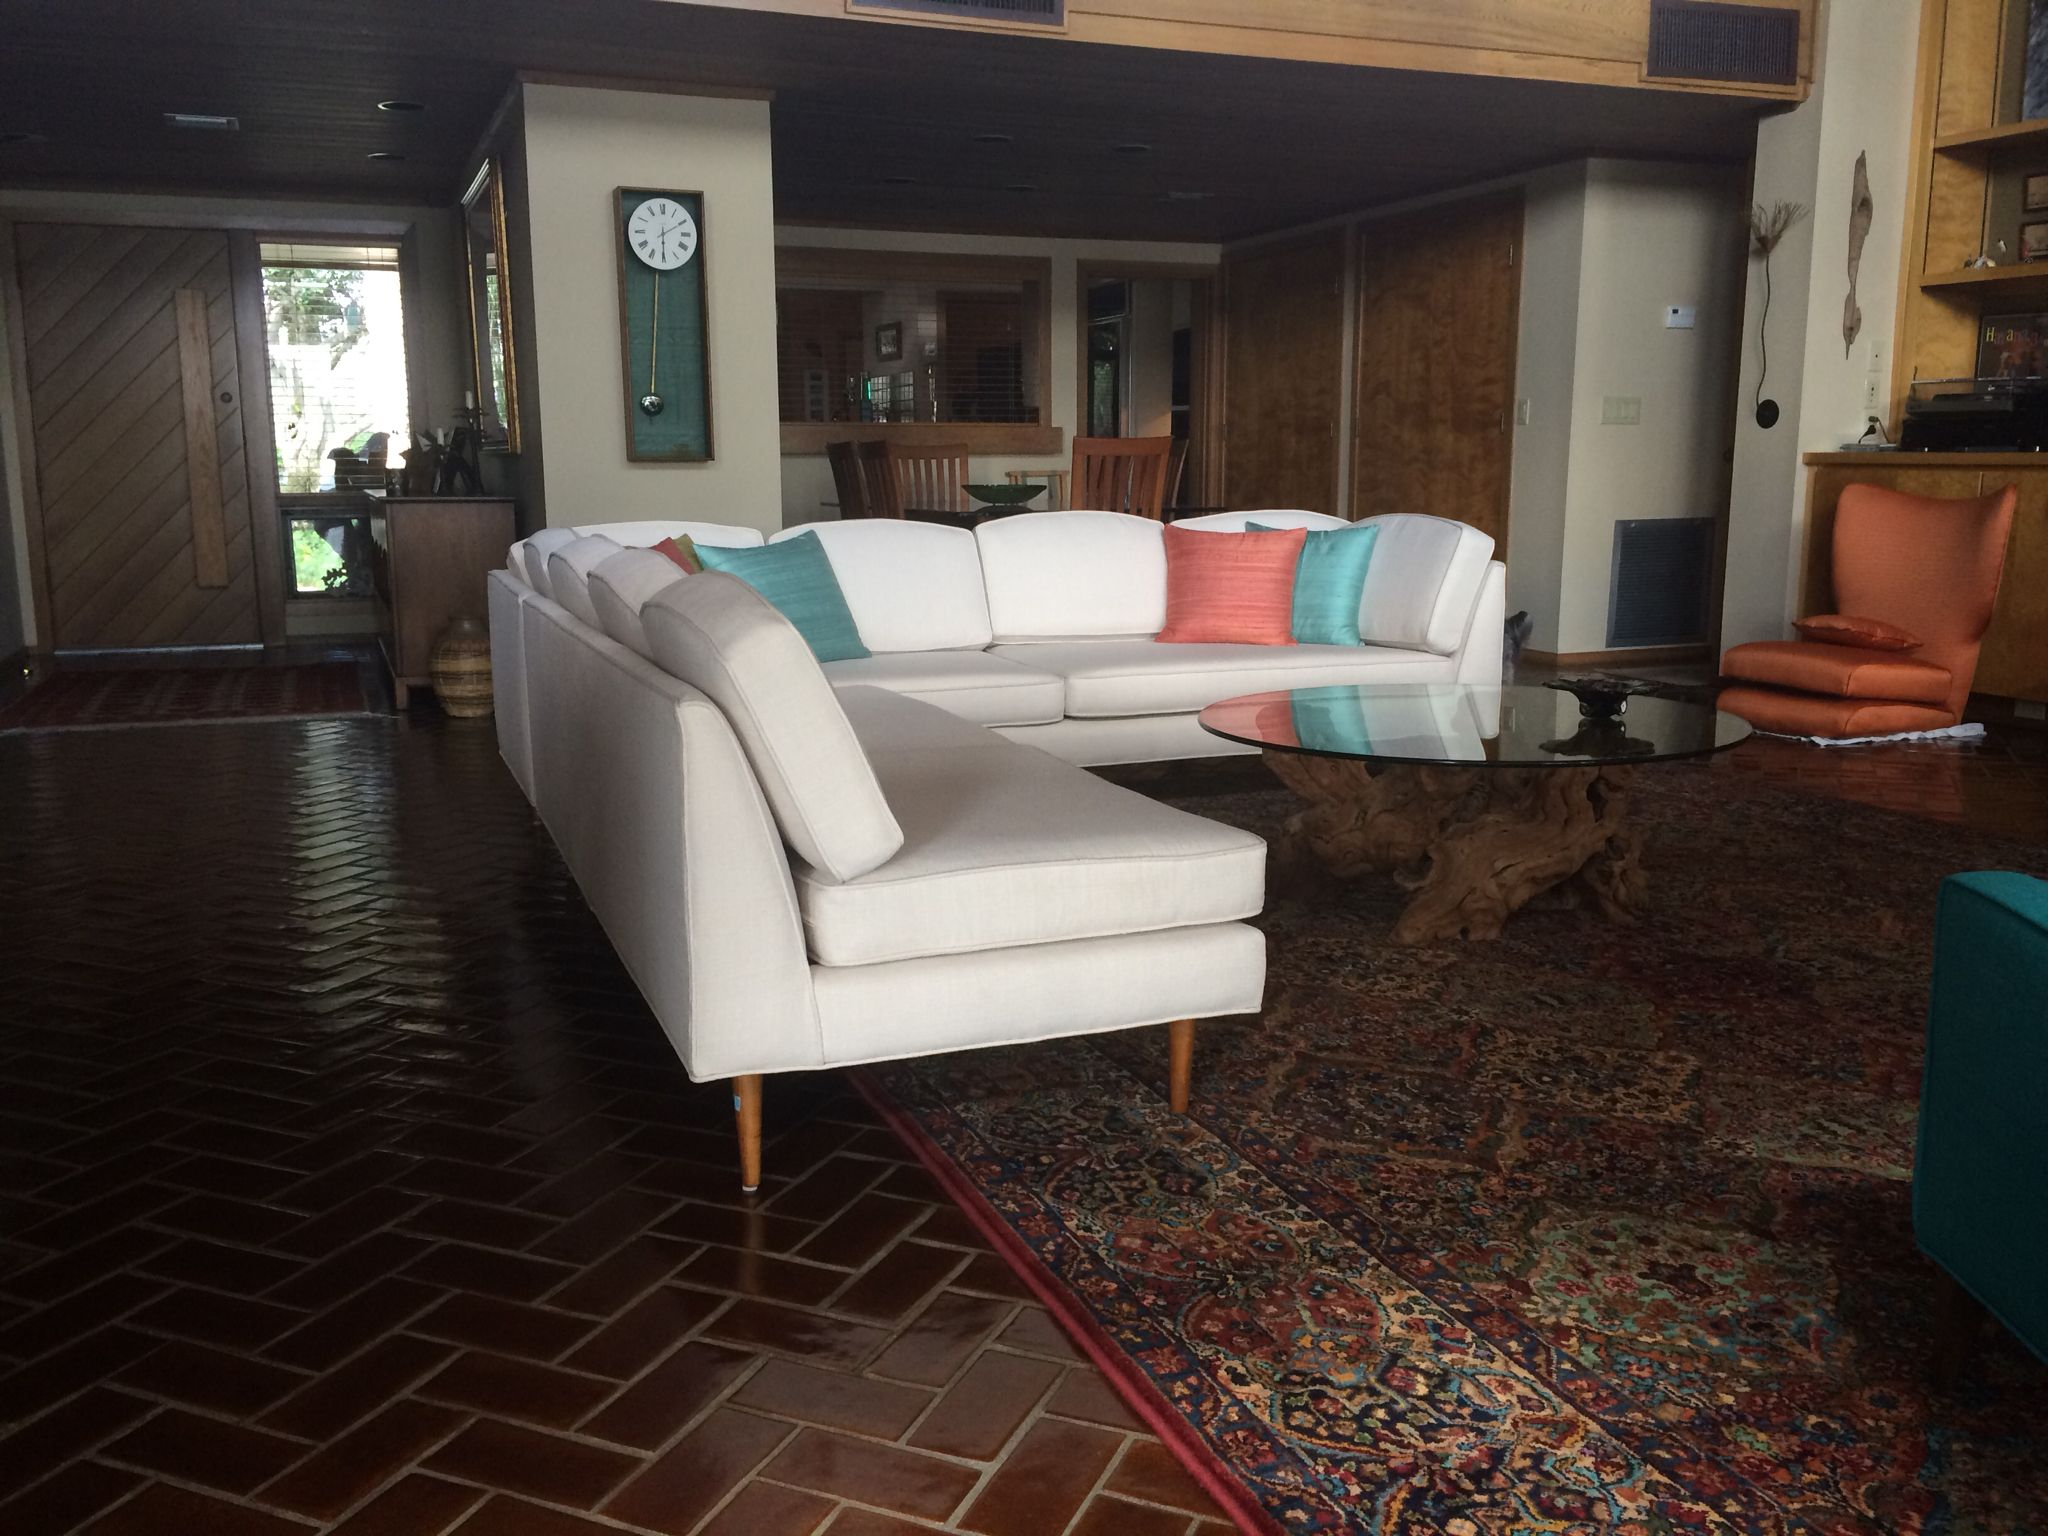 Mid Century Sectional, This Custom Designed 1962 Beauty I Call The Marzee!  Made Lancaster Furniture Portland Maine